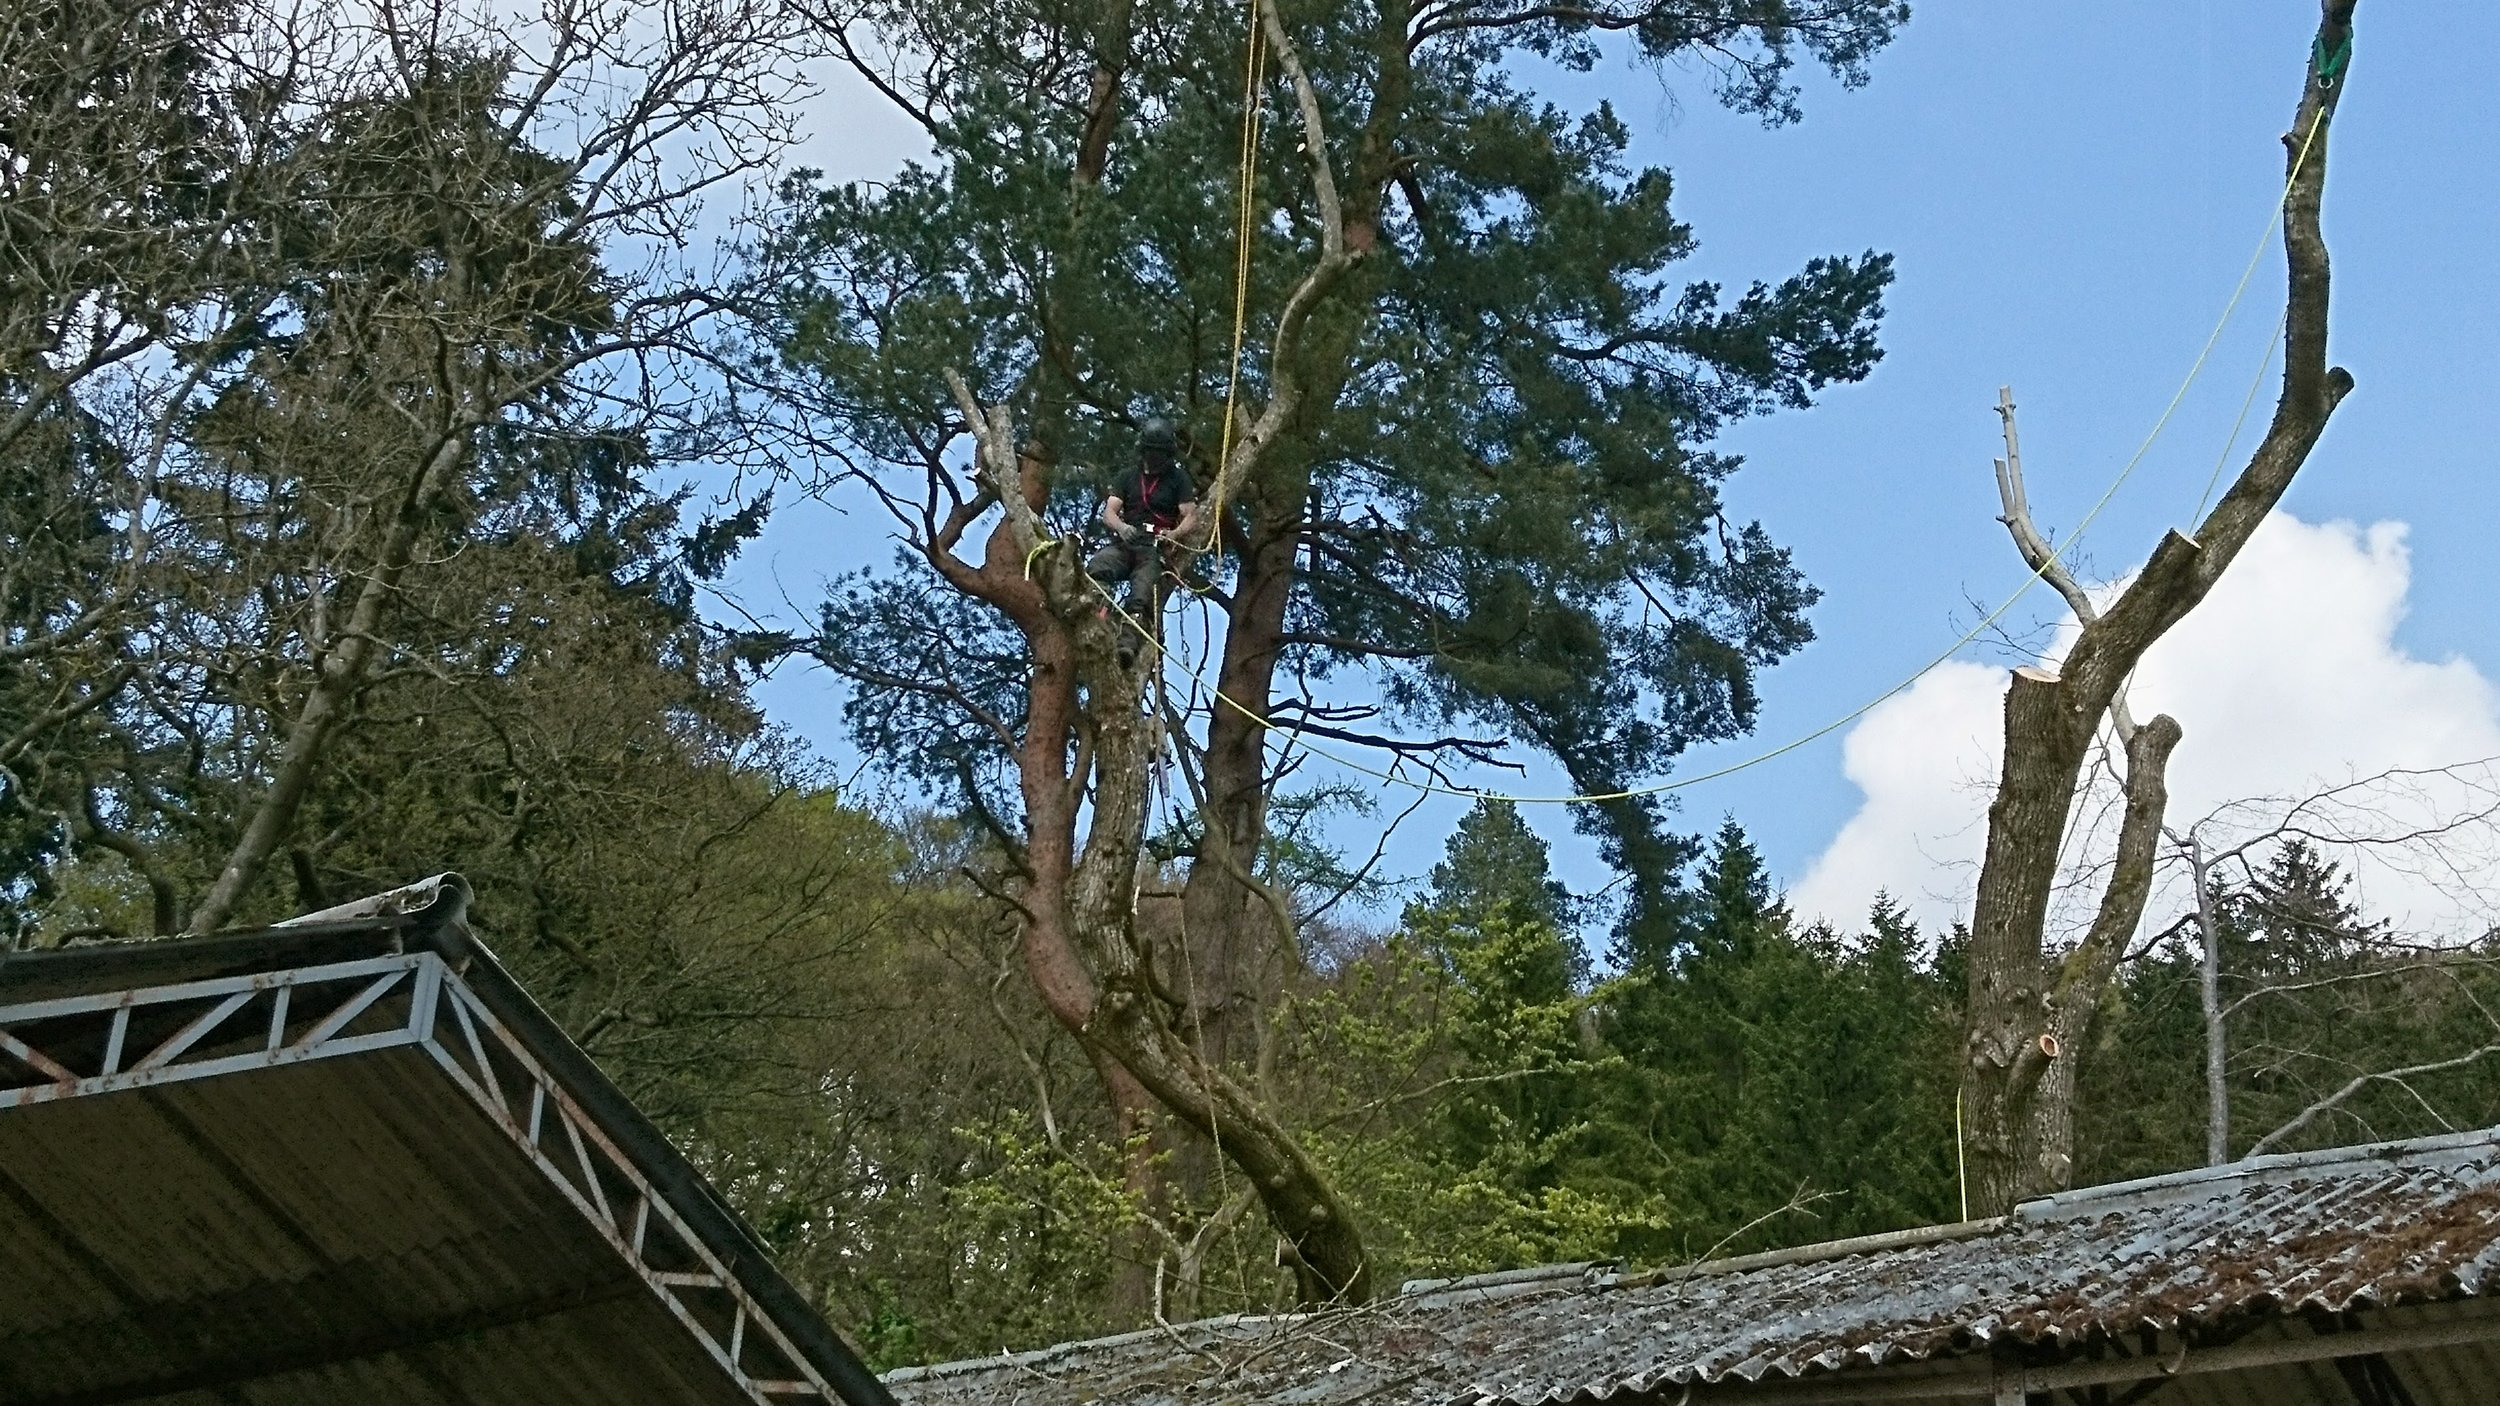 sPECIALIST RIGGING TECHNIQUES USED TO SAFELY REMOVE A LARGE ASH